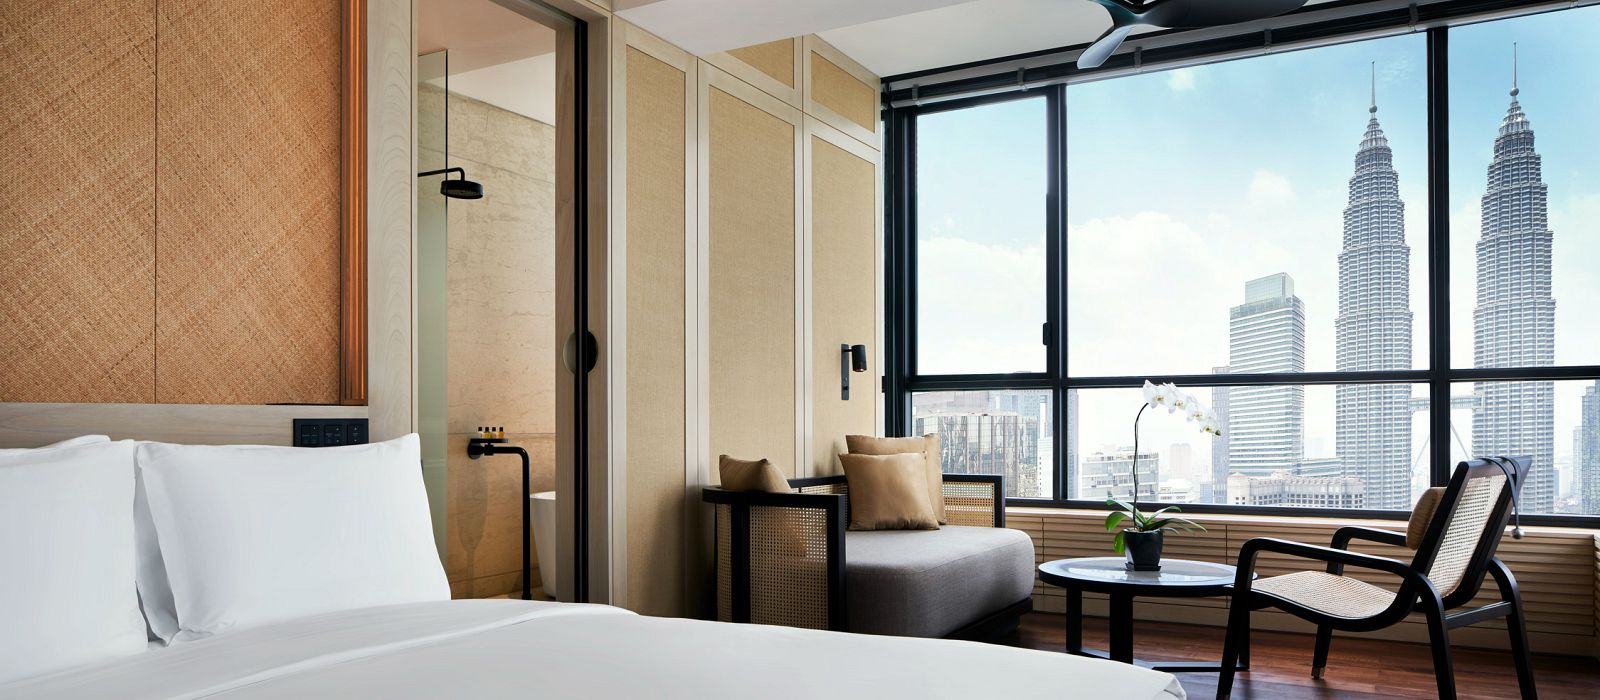 The RuMa Hotel and Residences deluxe suite